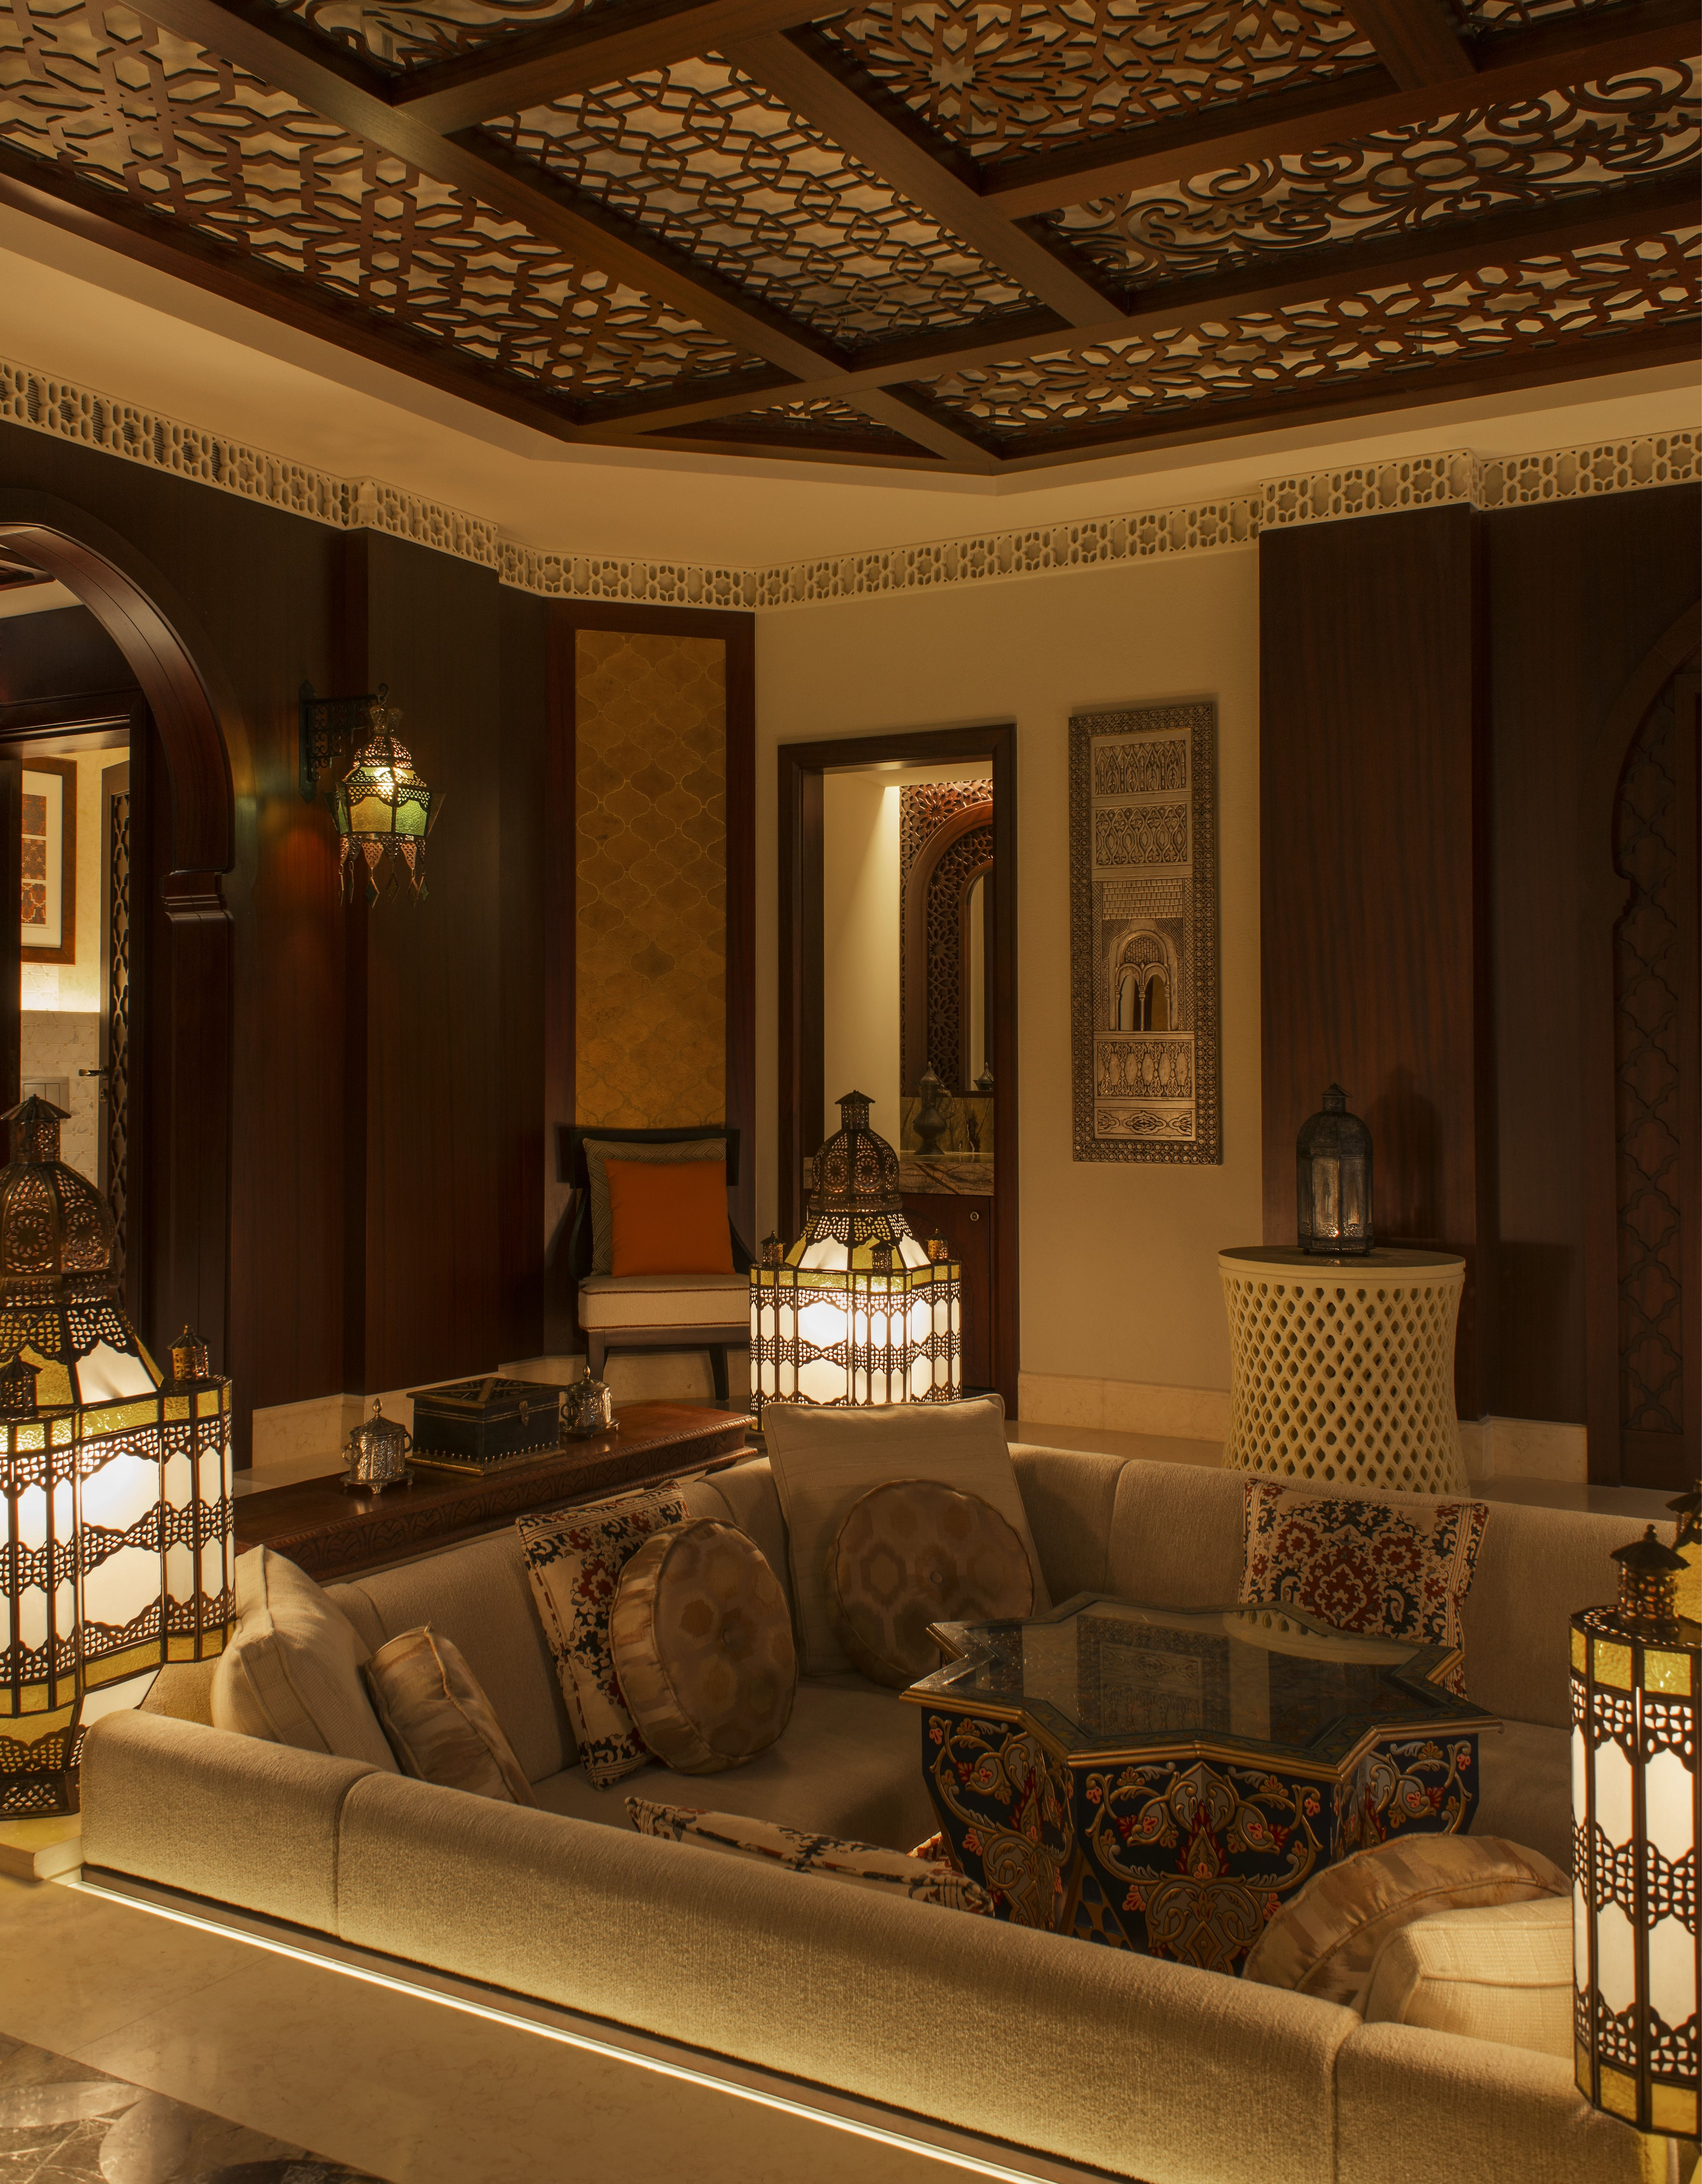 Moroccan Style Living Room Design Living Room Decorating Ideas On A Budget Moroccan Suite Living